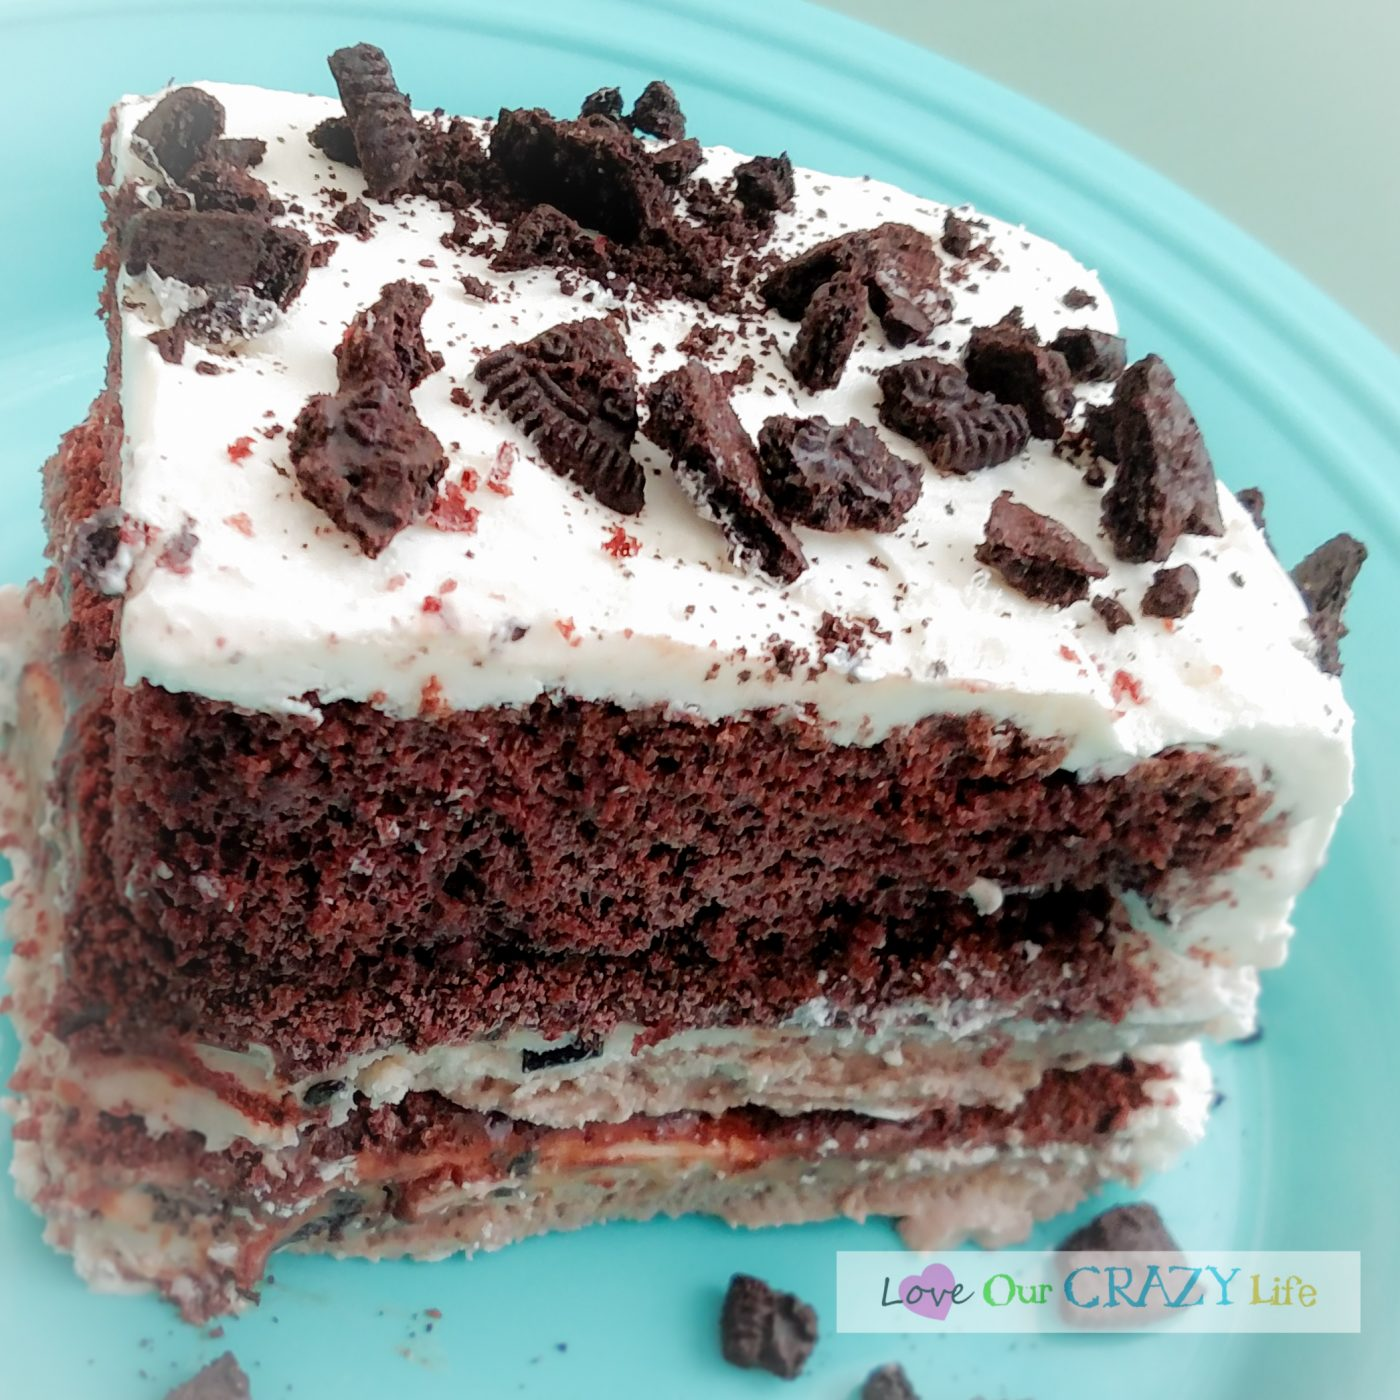 This is not your typical ice cream cake. This is 7 layers of divine sweetness. So easy to make too!